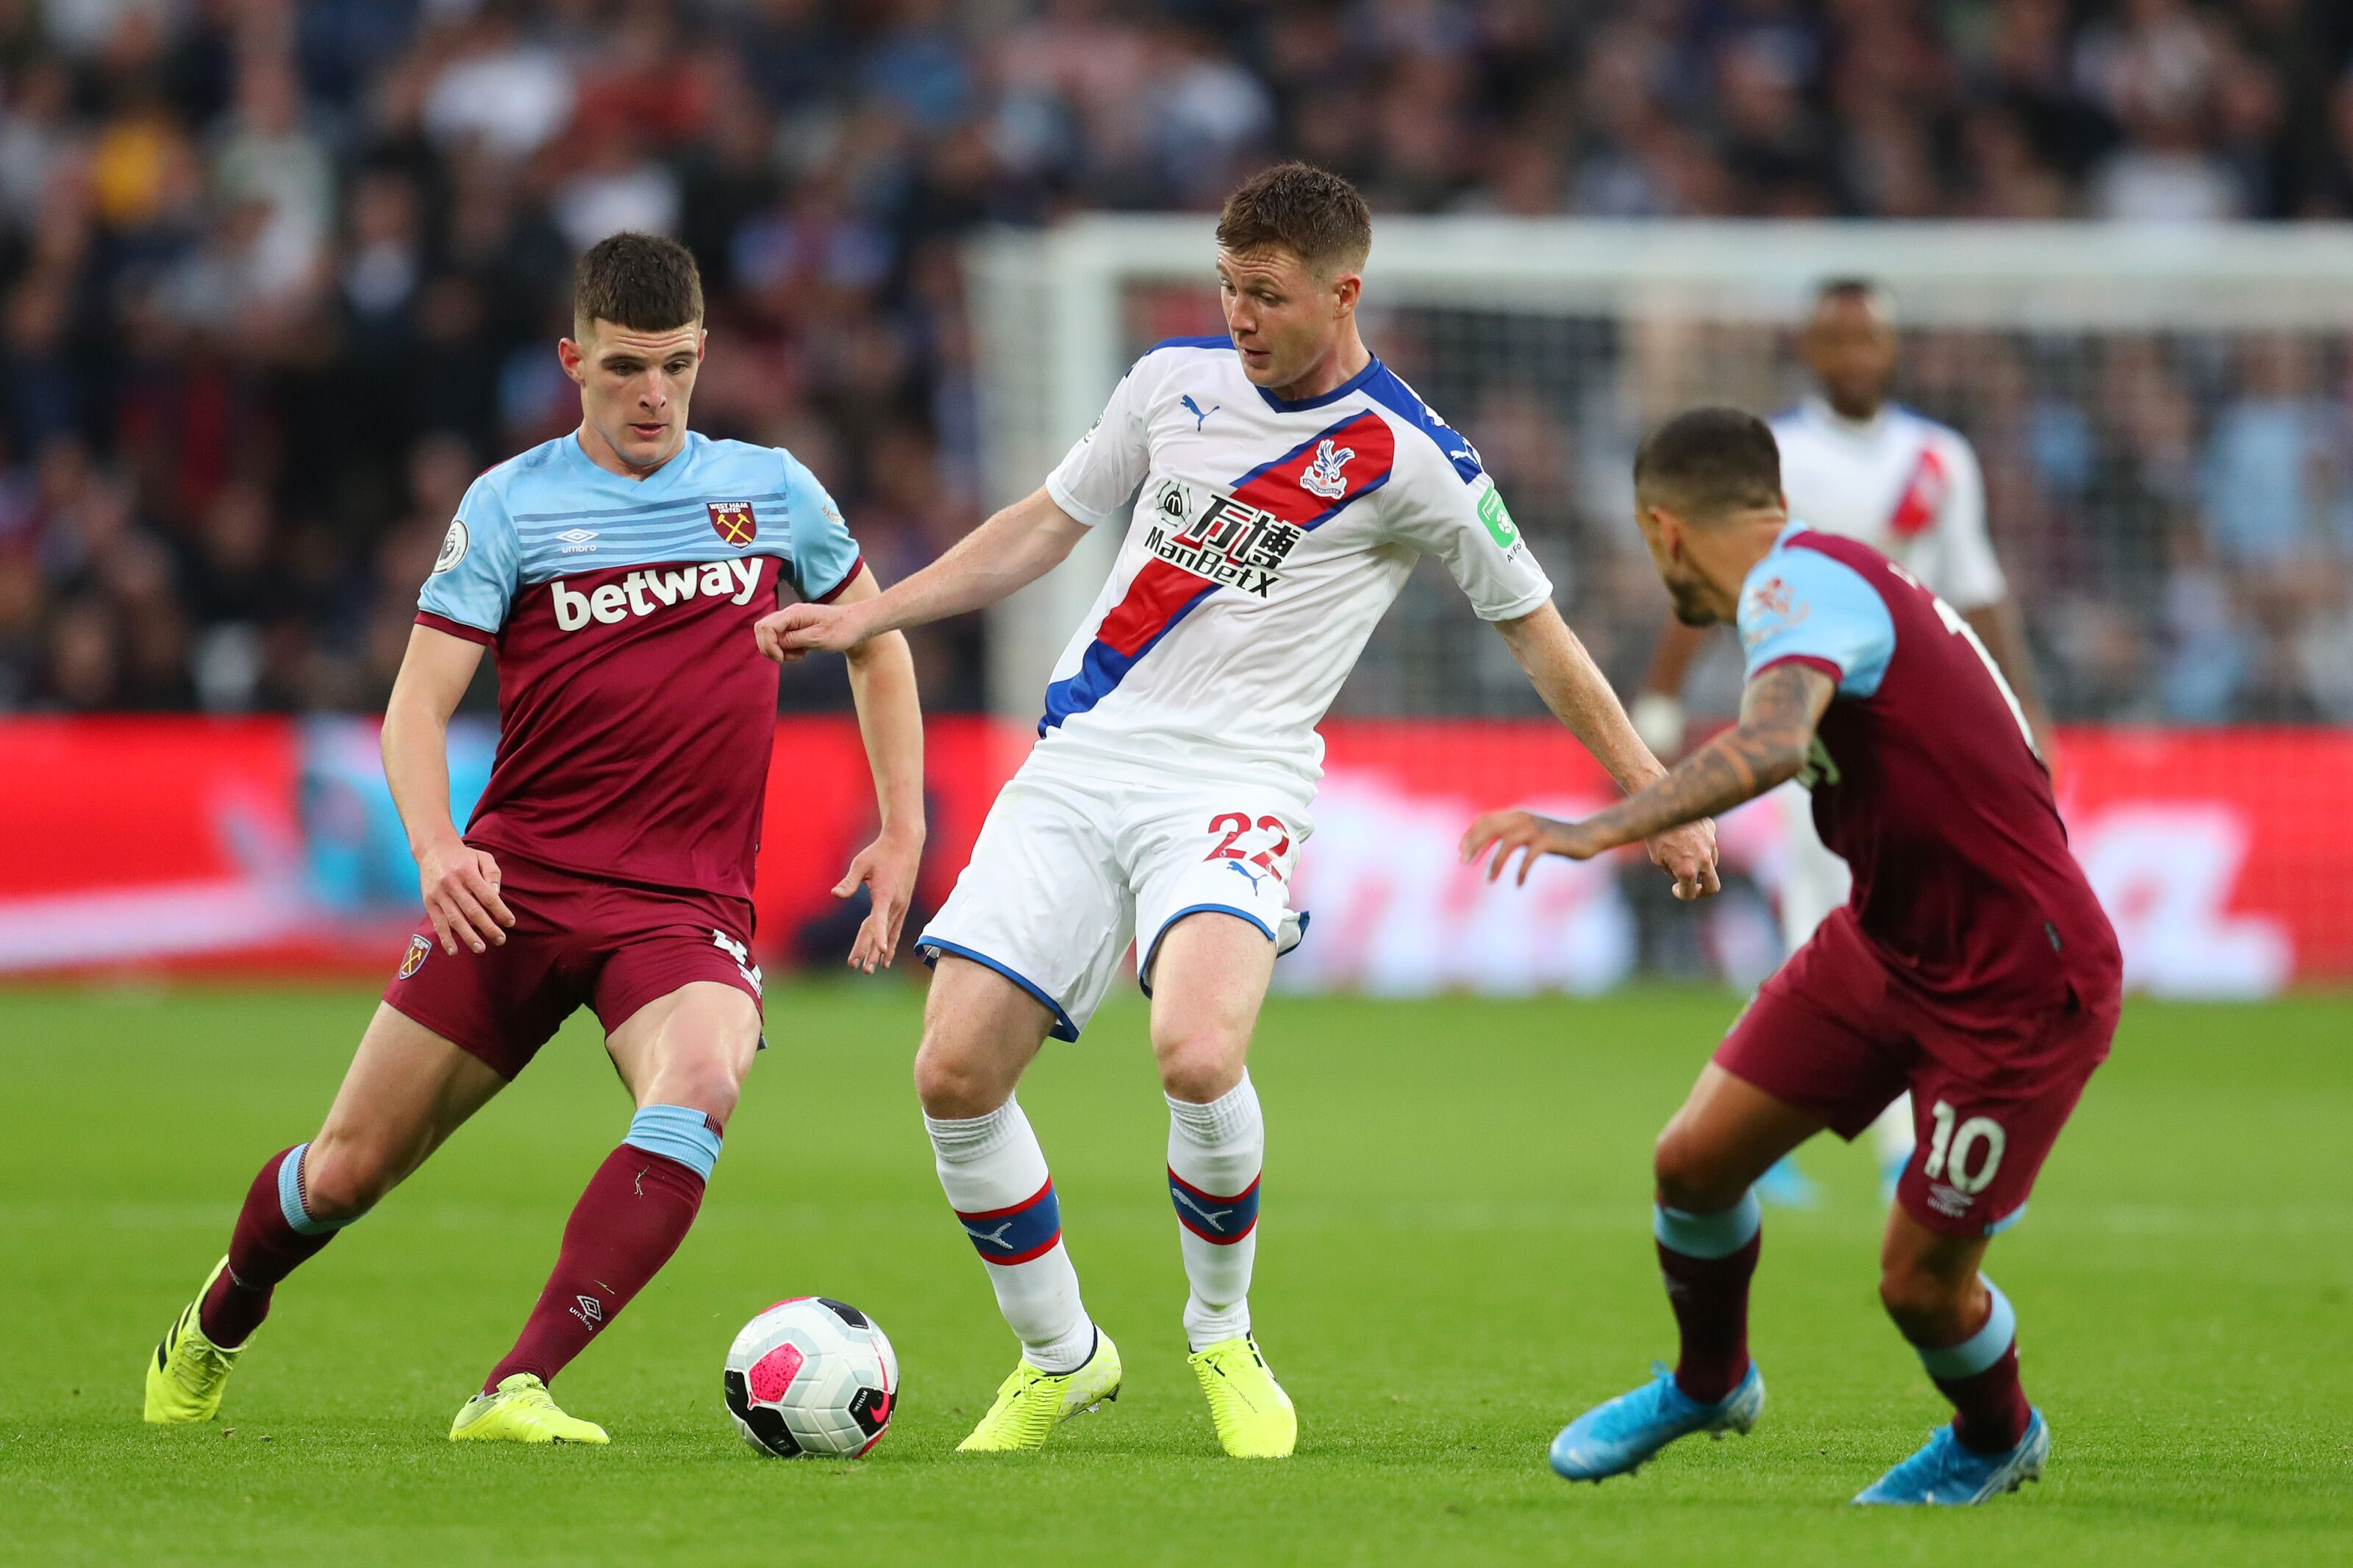 Is it time for West Ham to mix up their starting squad?